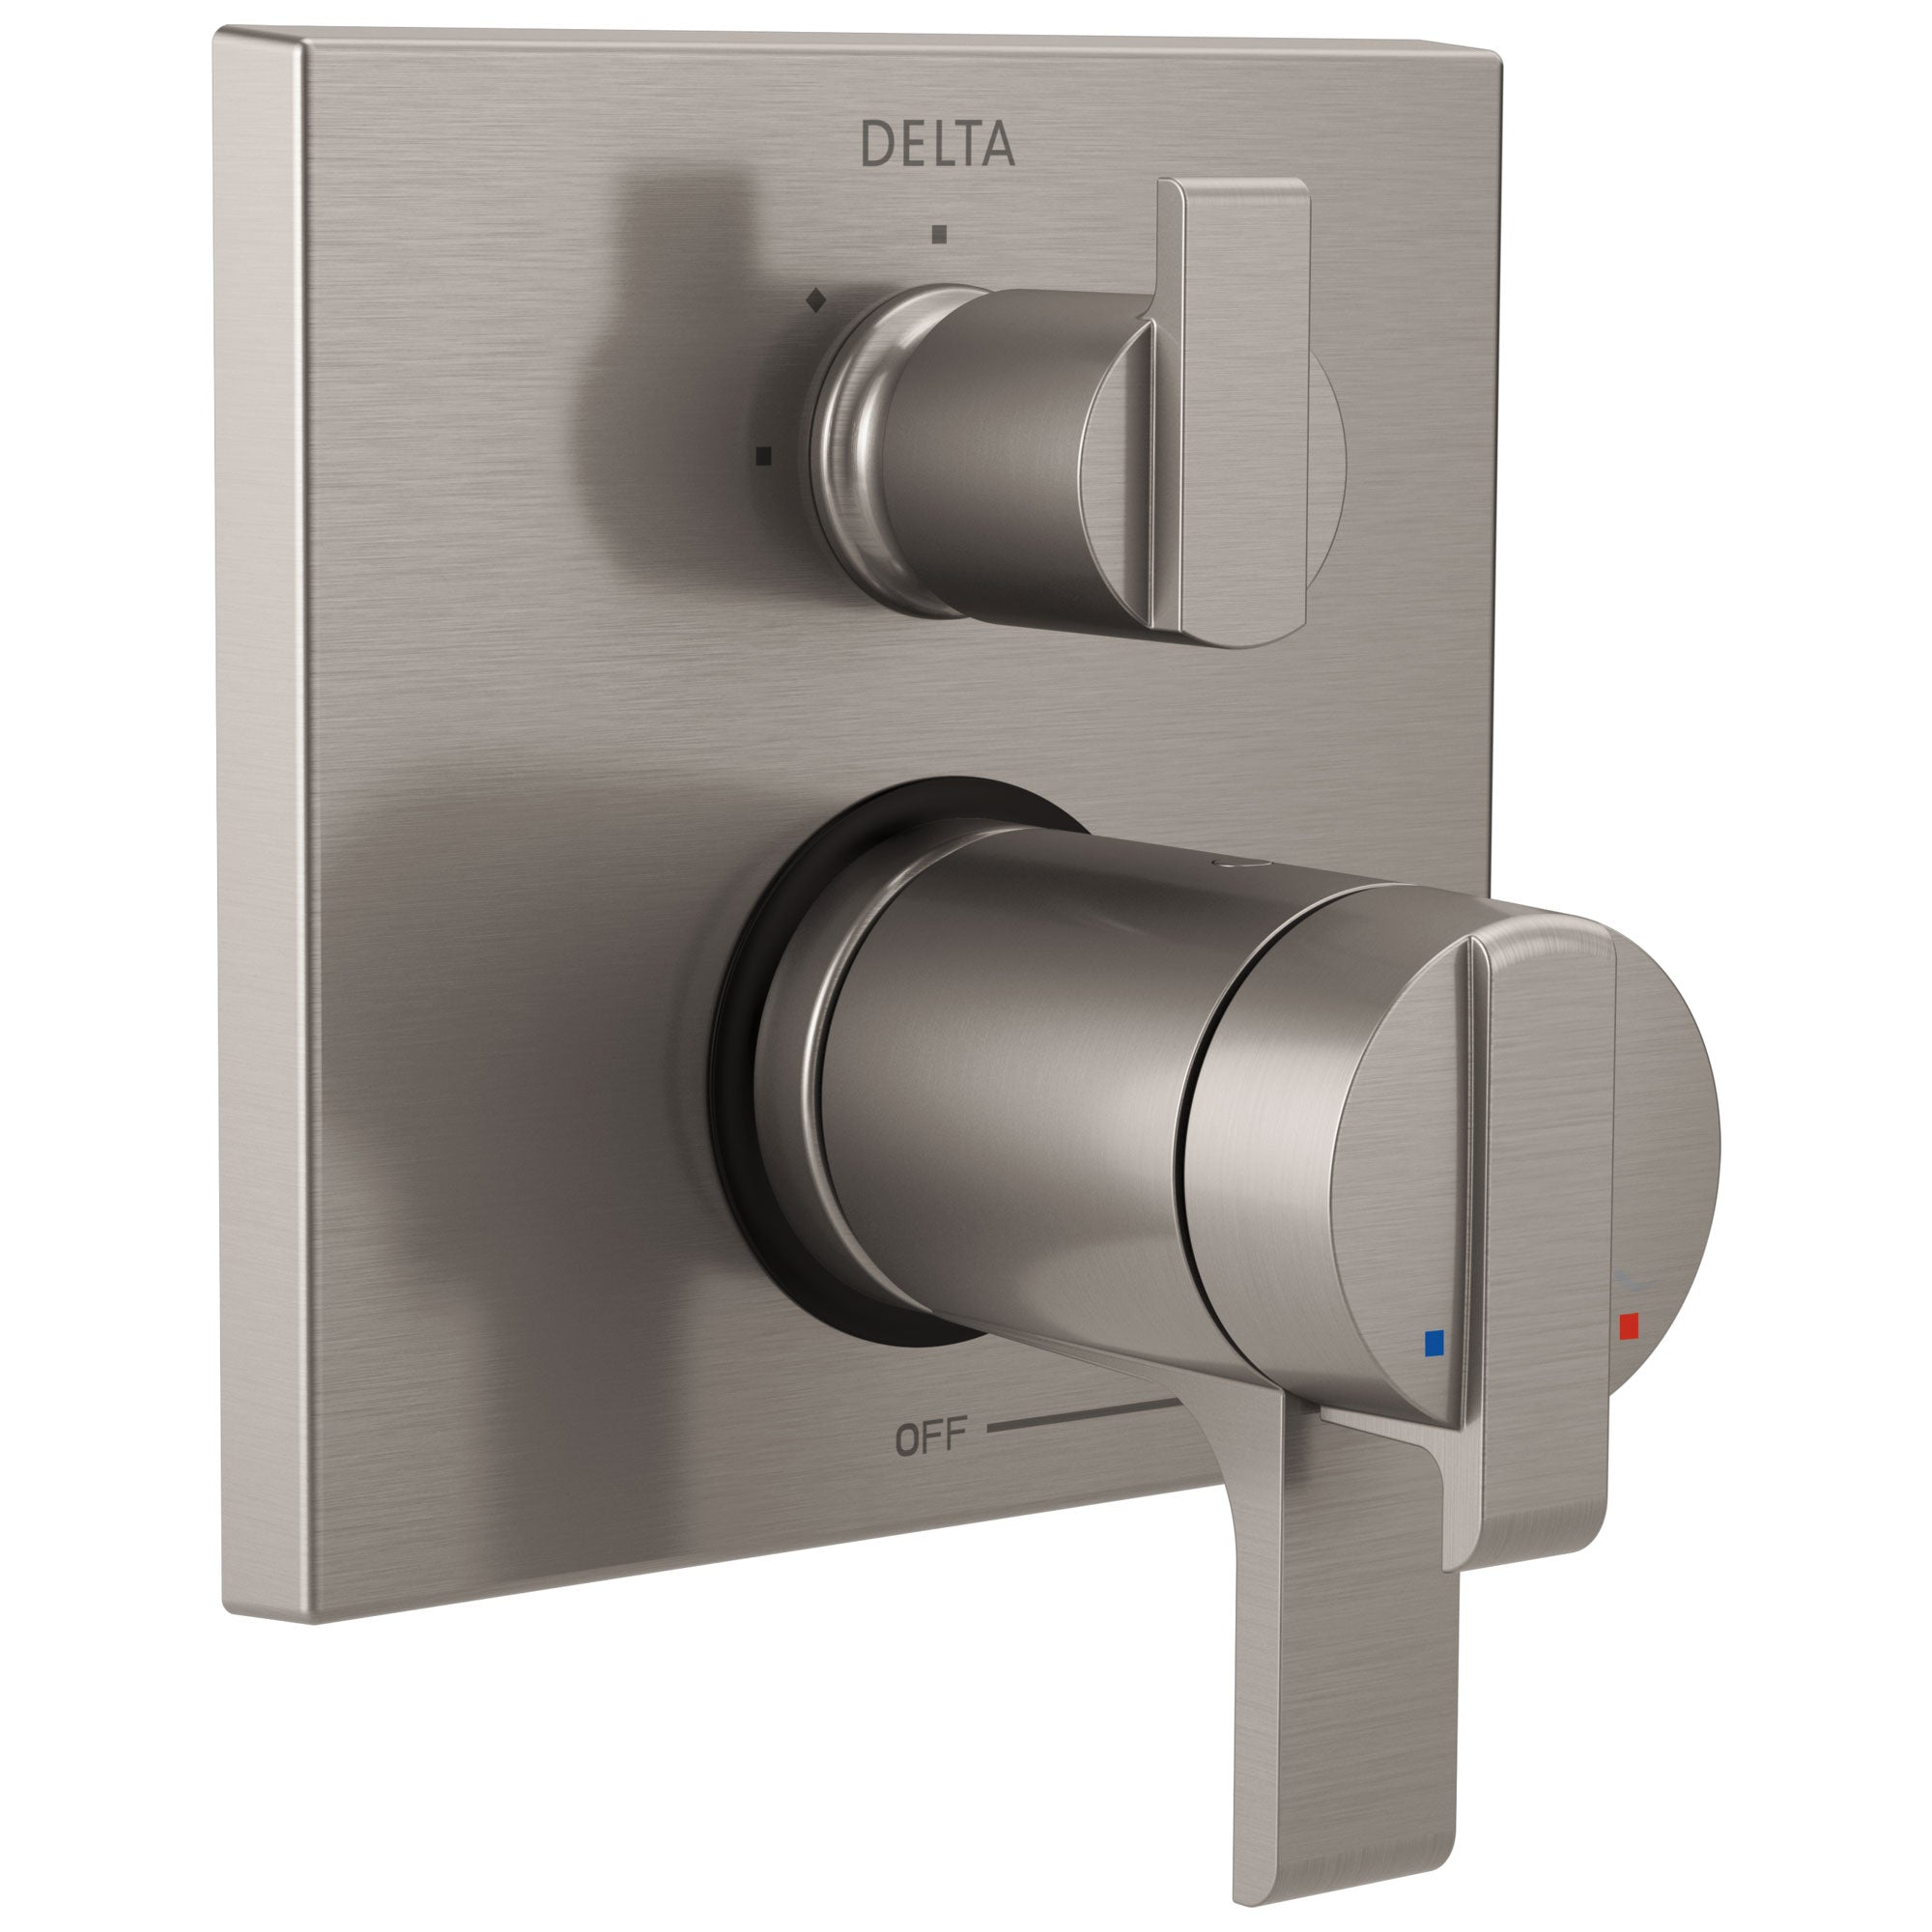 Delta Ara Collection Stainless Steel Finish Thermostatic Shower Faucet Control with 3-Setting Integrated Diverter Trim (Requires Valve) DT27T867SS